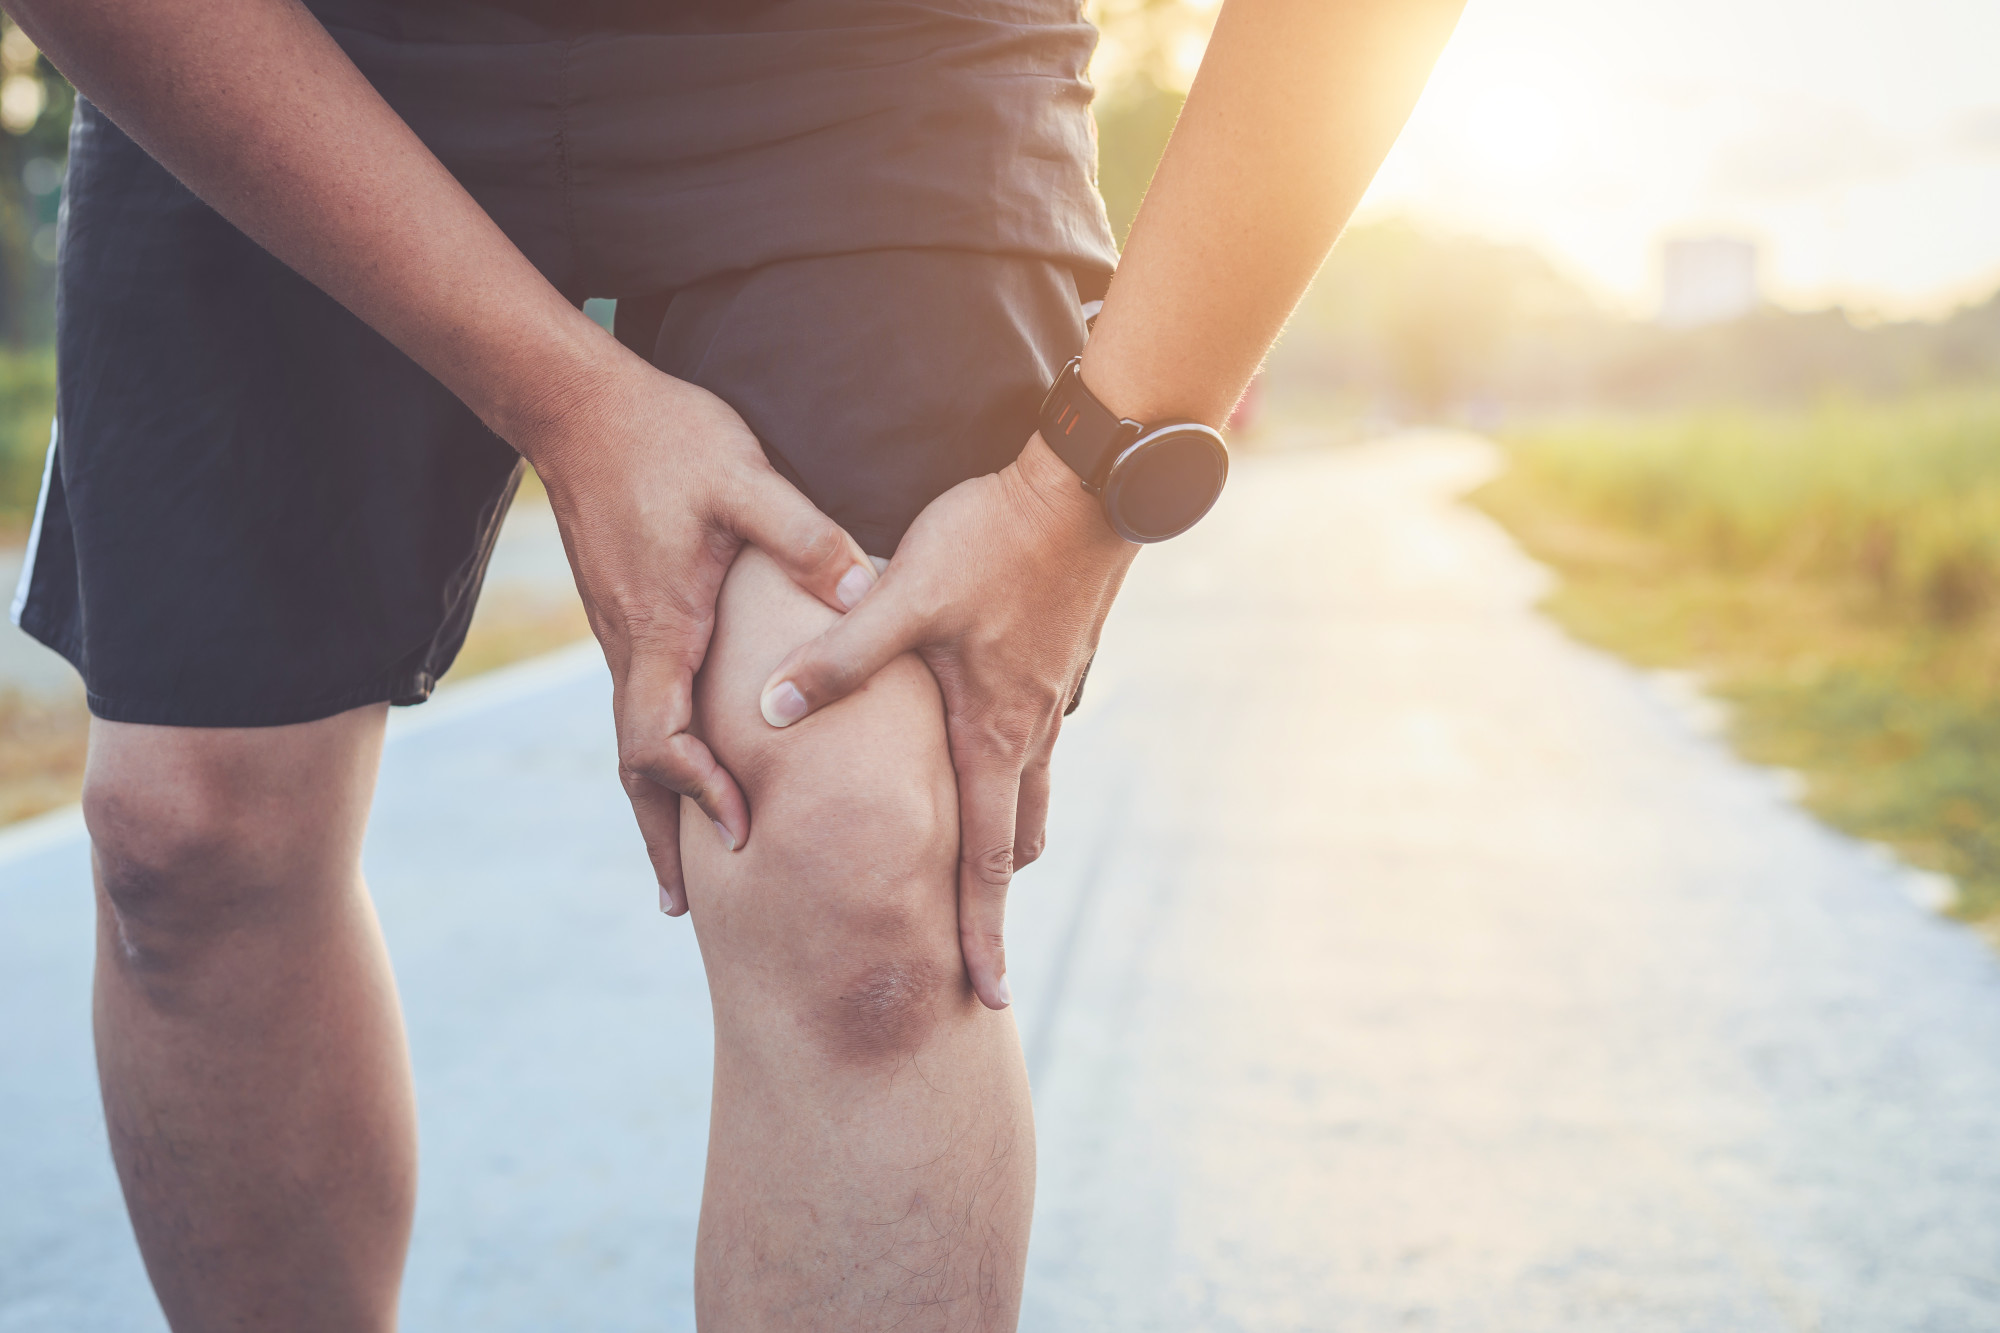 Common Sports Injuries and How to Treat Them